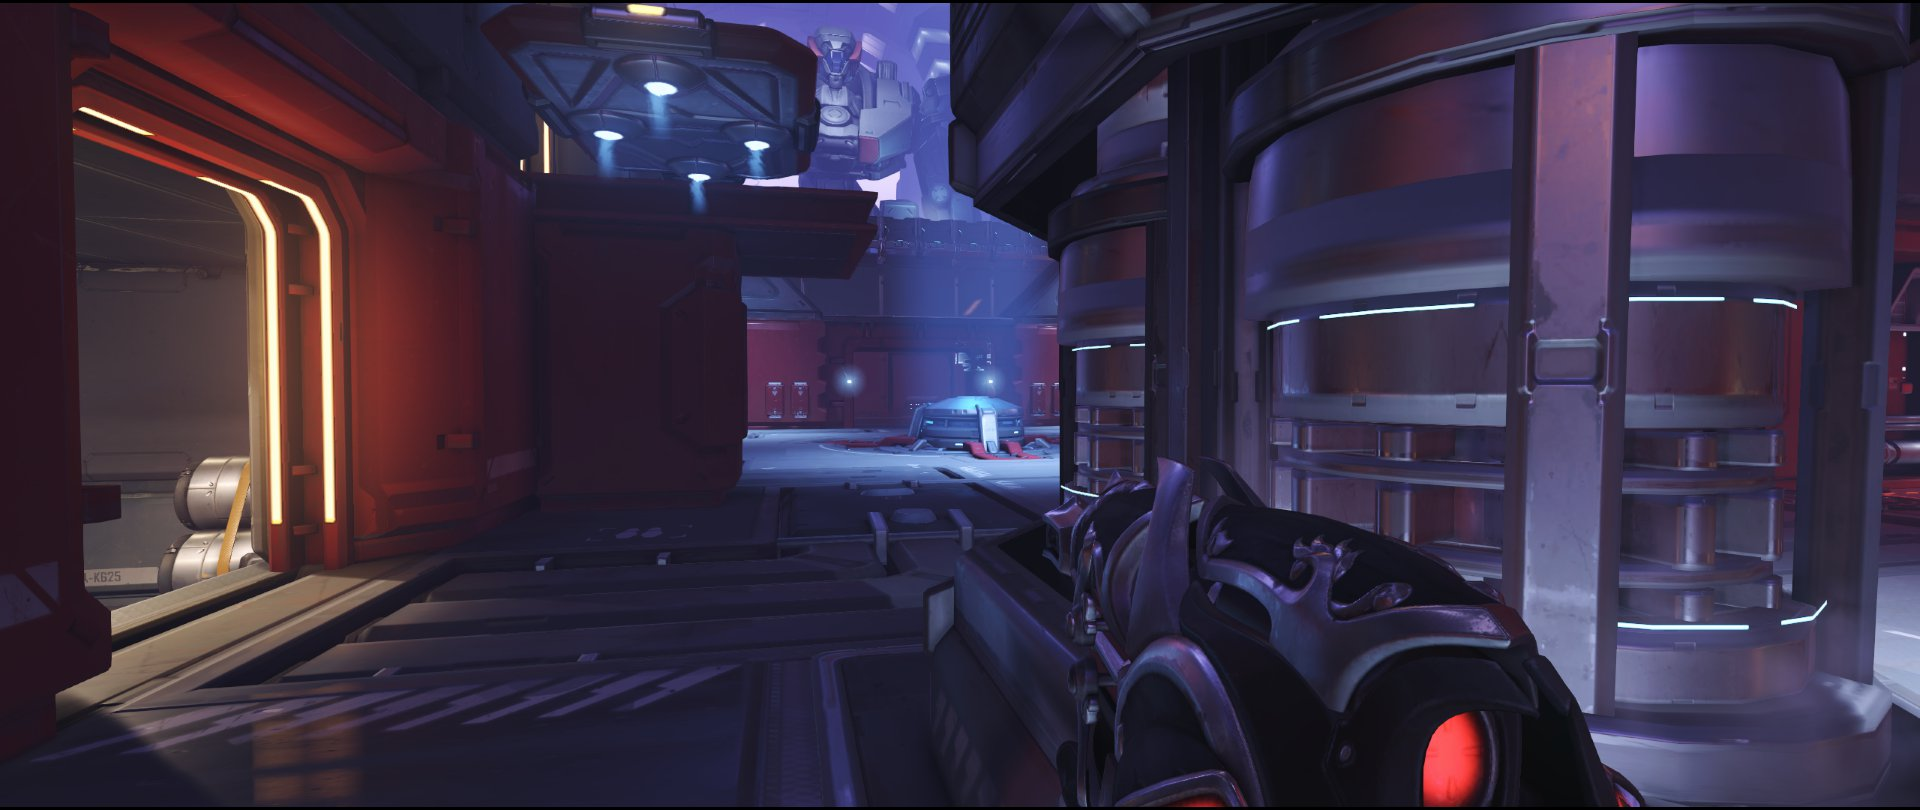 Mid ground level attack sniping spot Widowmaker Volskaya Industries Overwatch.jpg